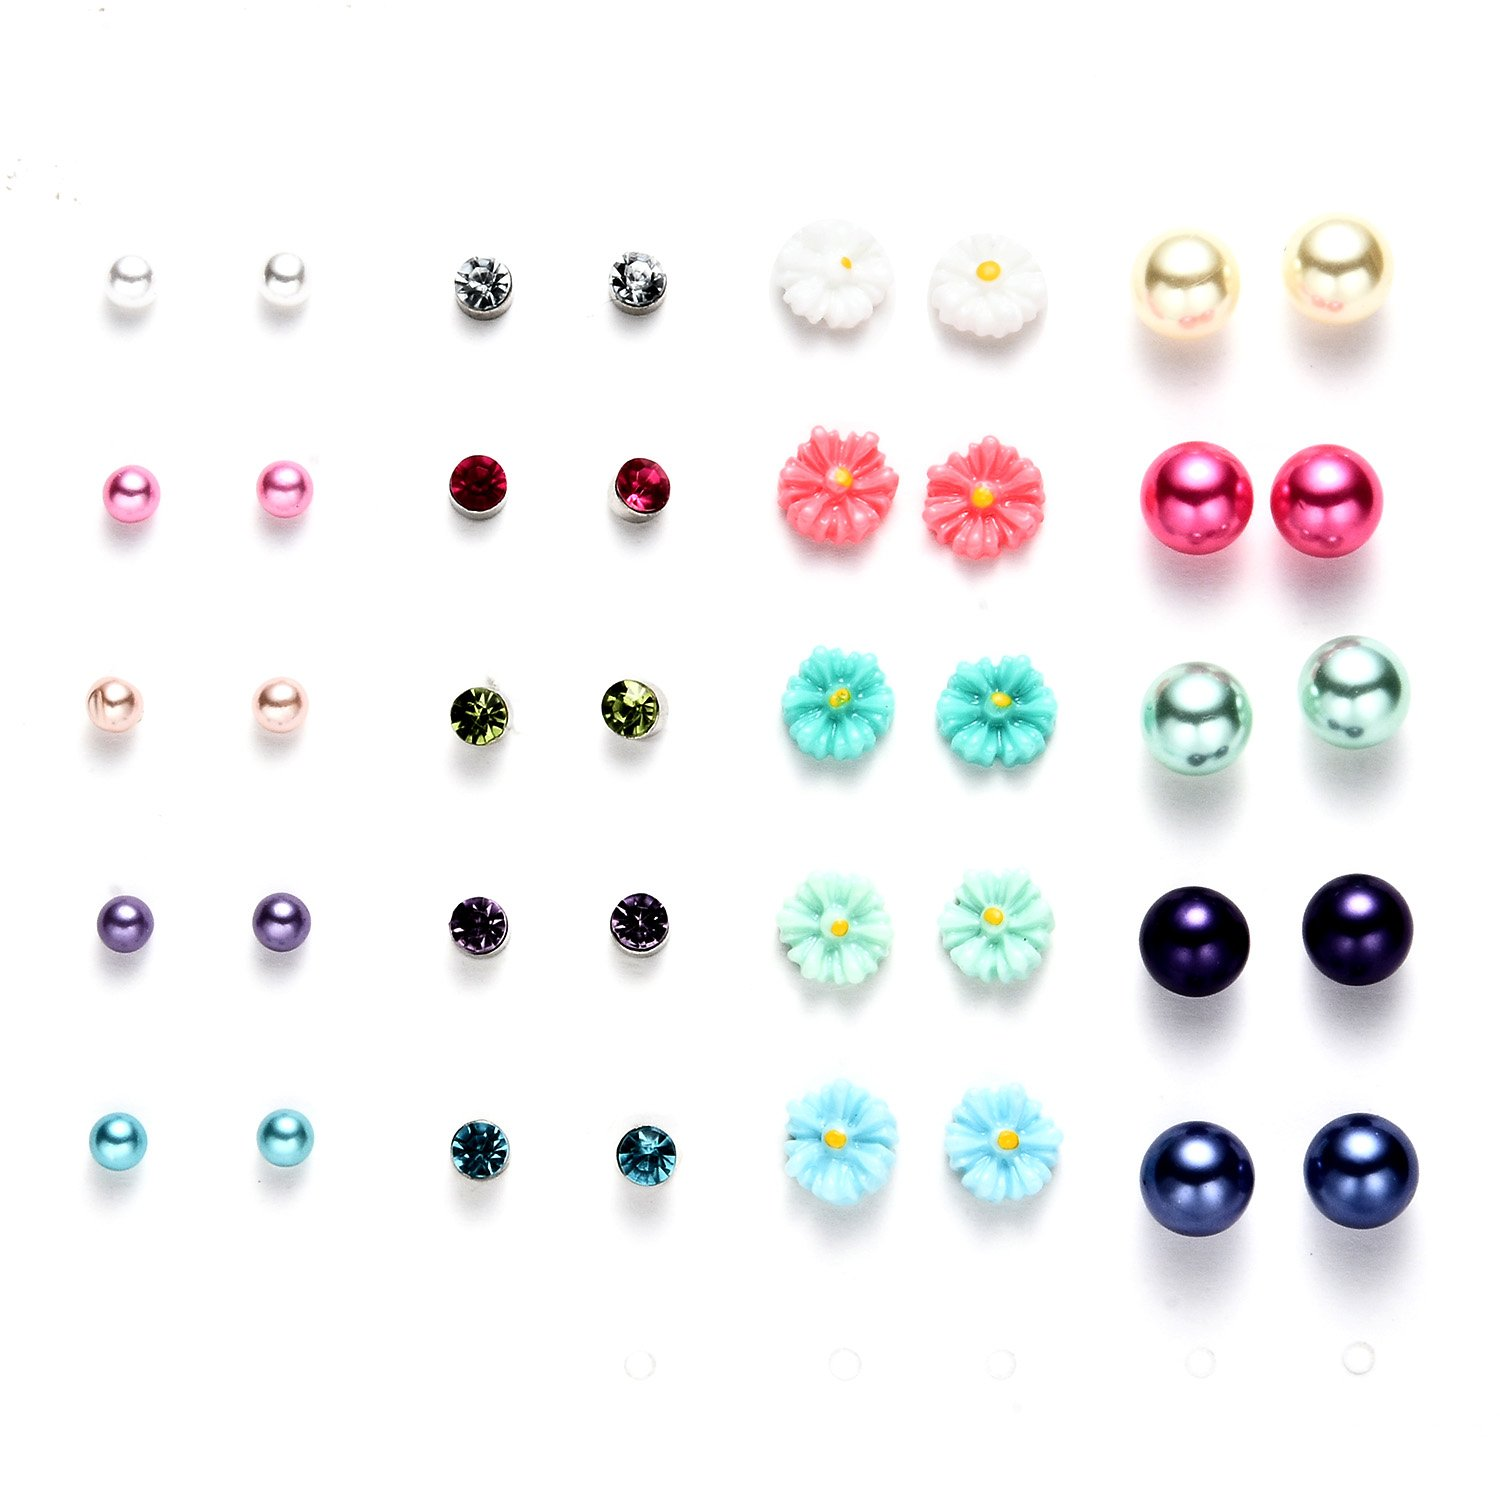 16 Pairs Cute Flower Animals Resin Stud Earrings Sets for Girls Bensoco E-0480